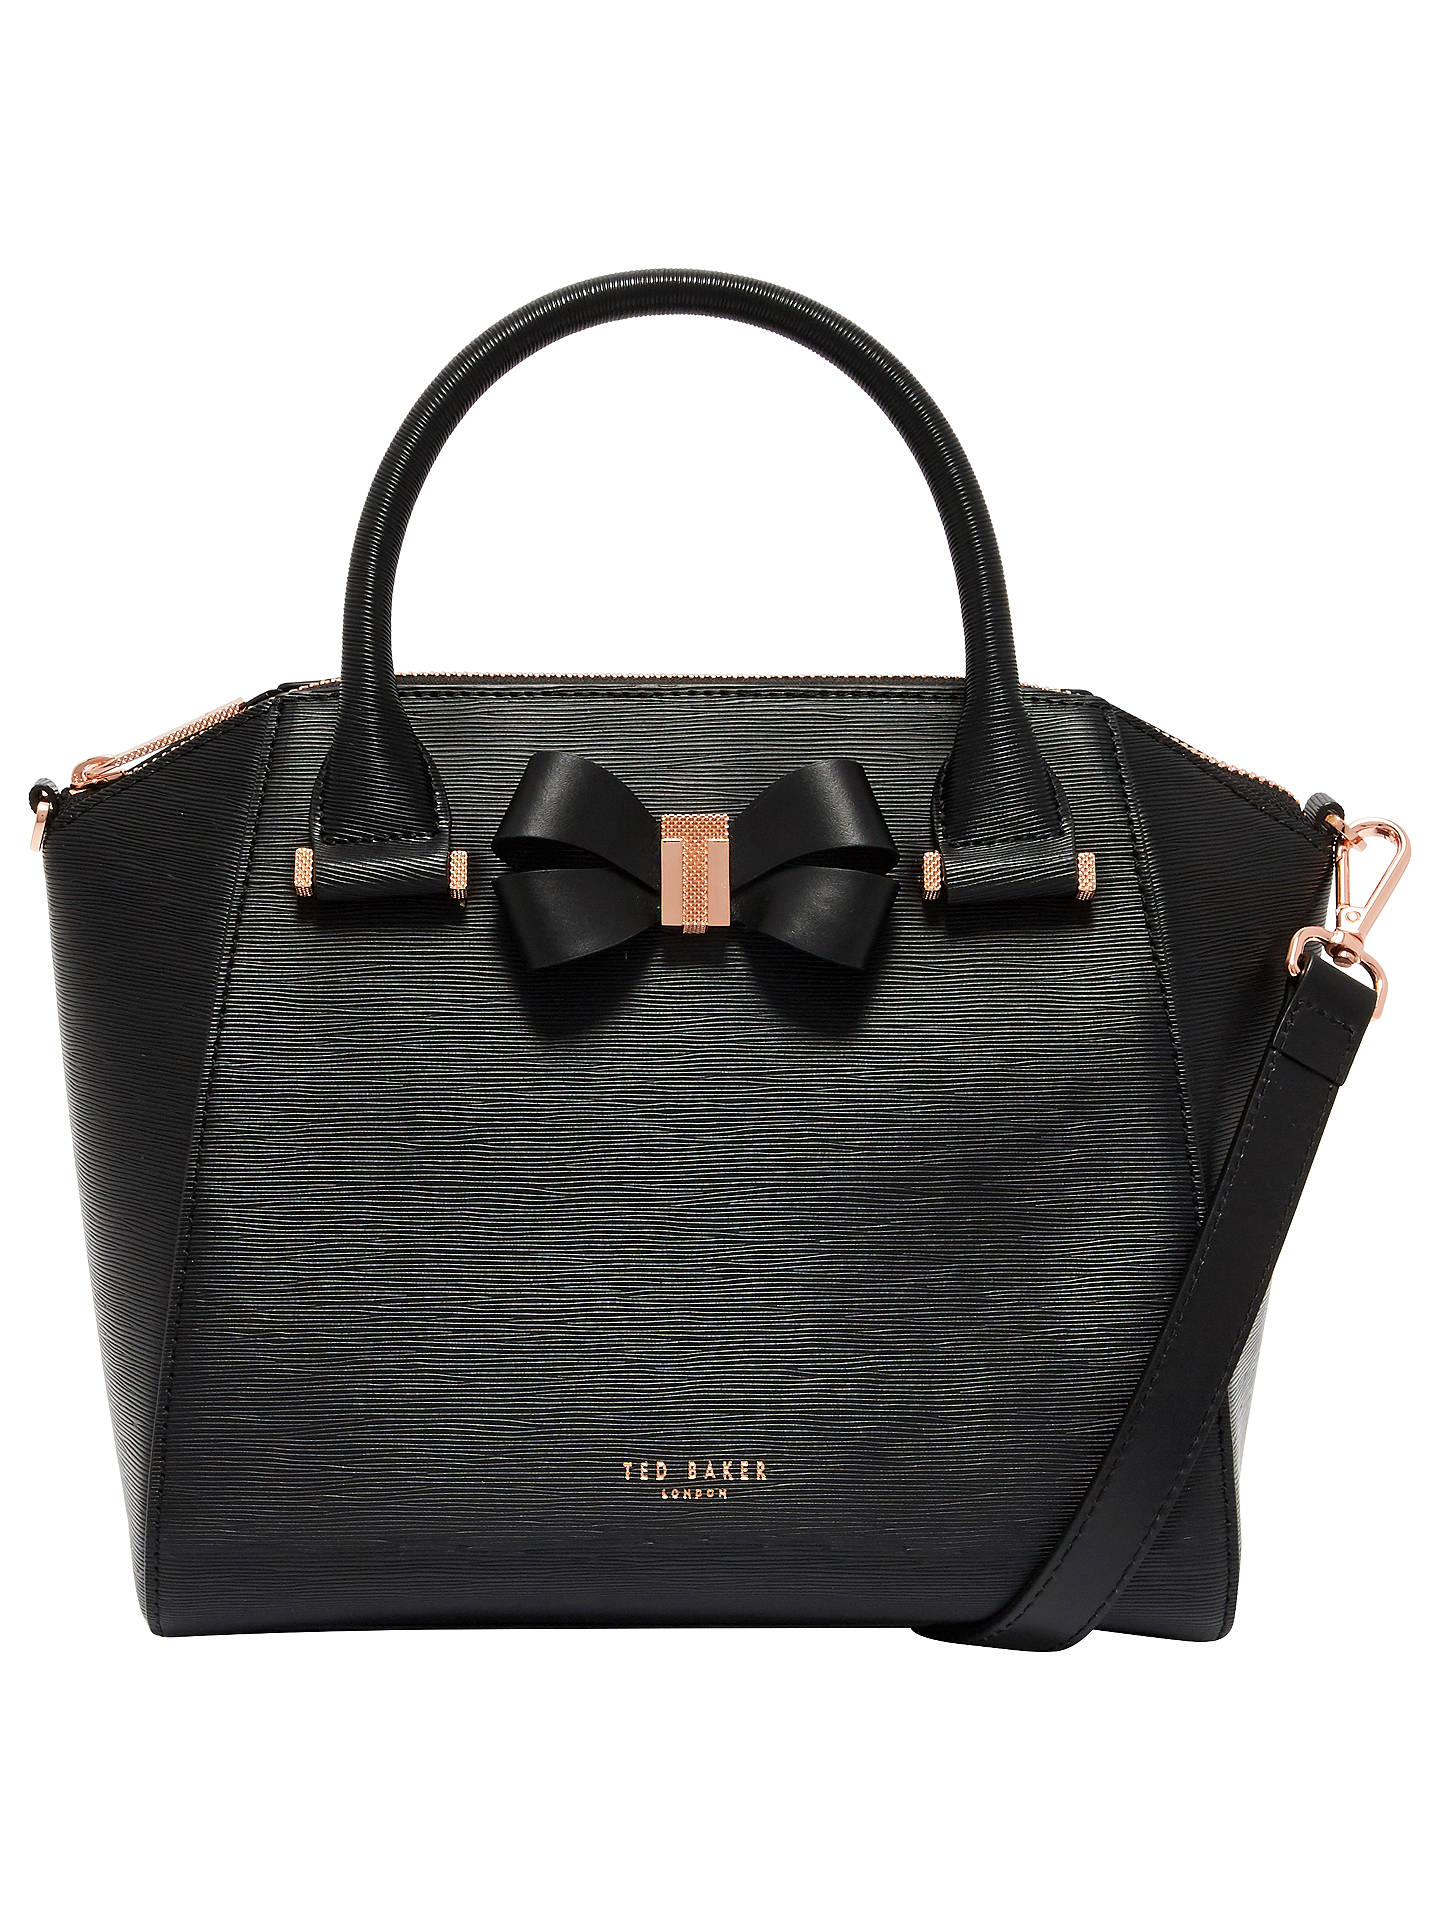 fe330946f1a Buy Ted Baker Bow Detail Leather Small Tote Bag, Black Online at  johnlewis.com ...